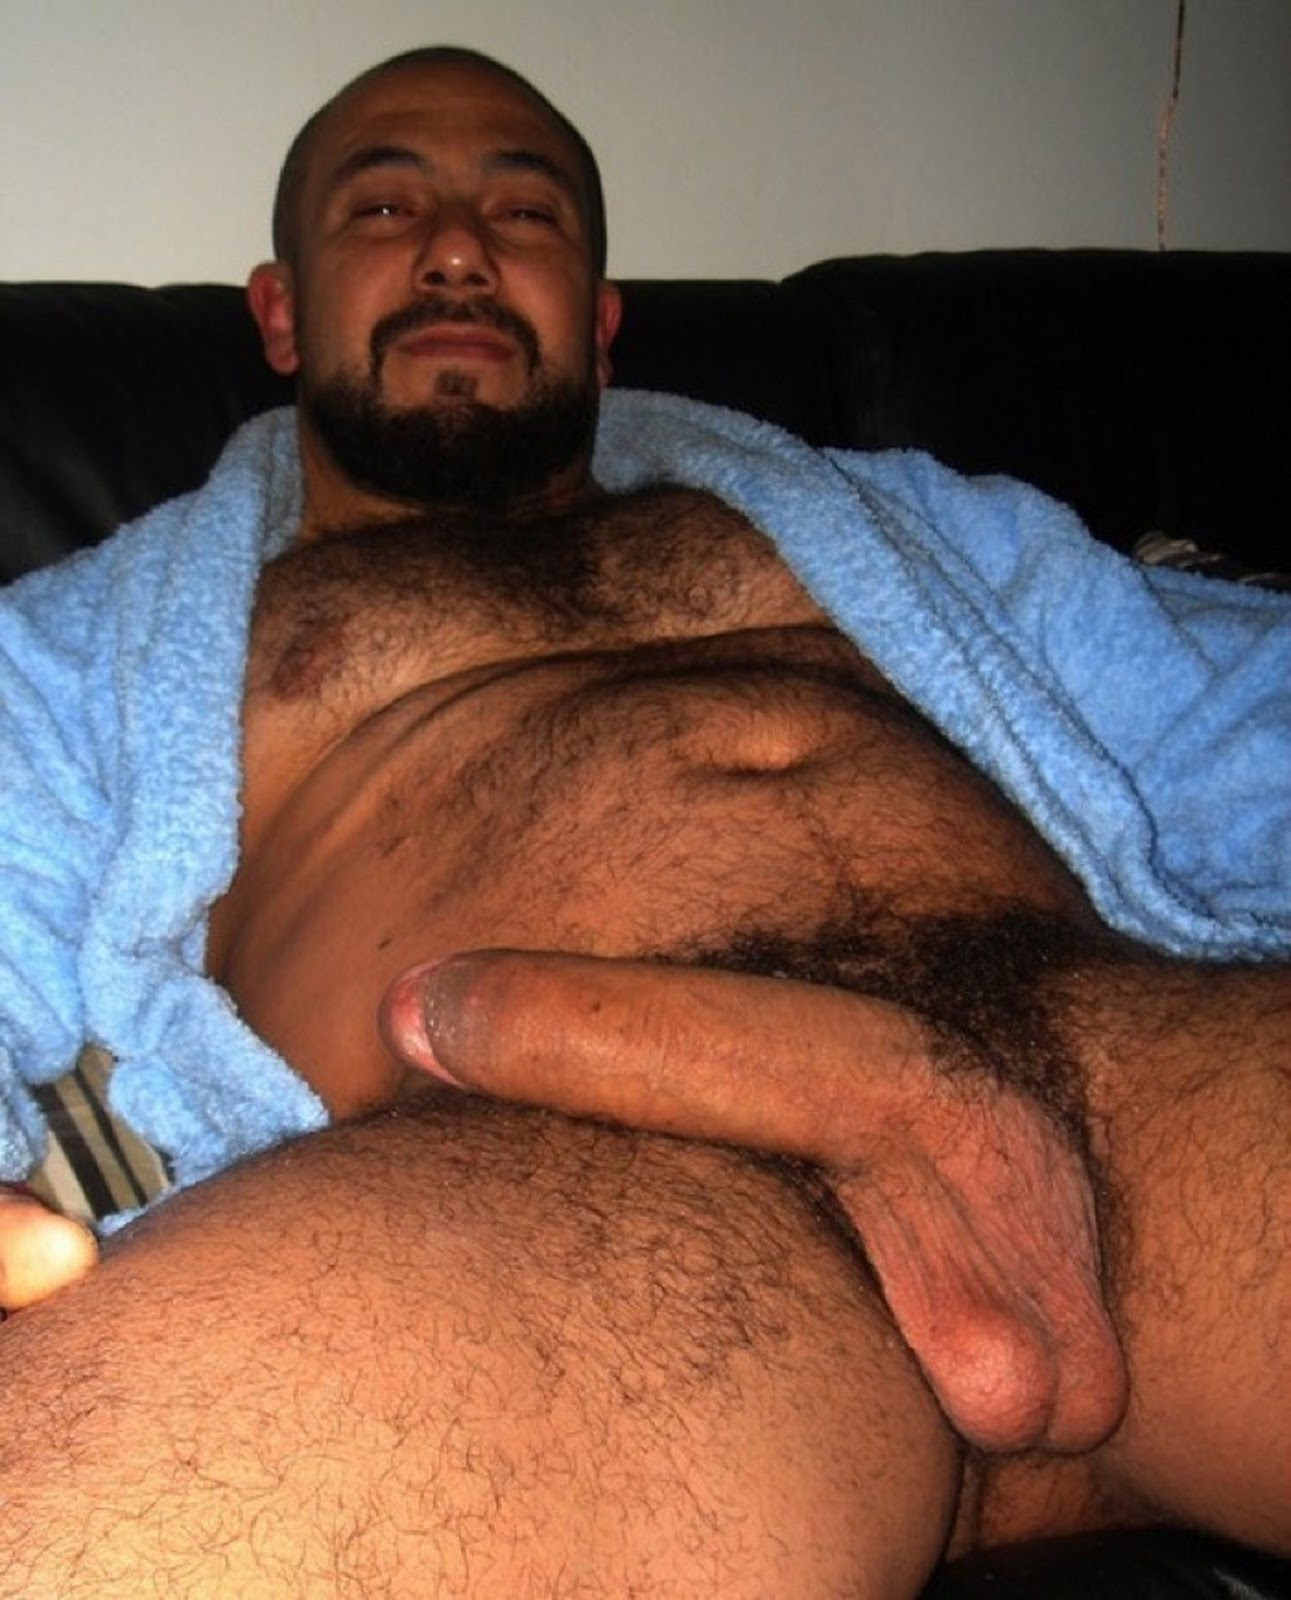 Bear cub solo - fat cock